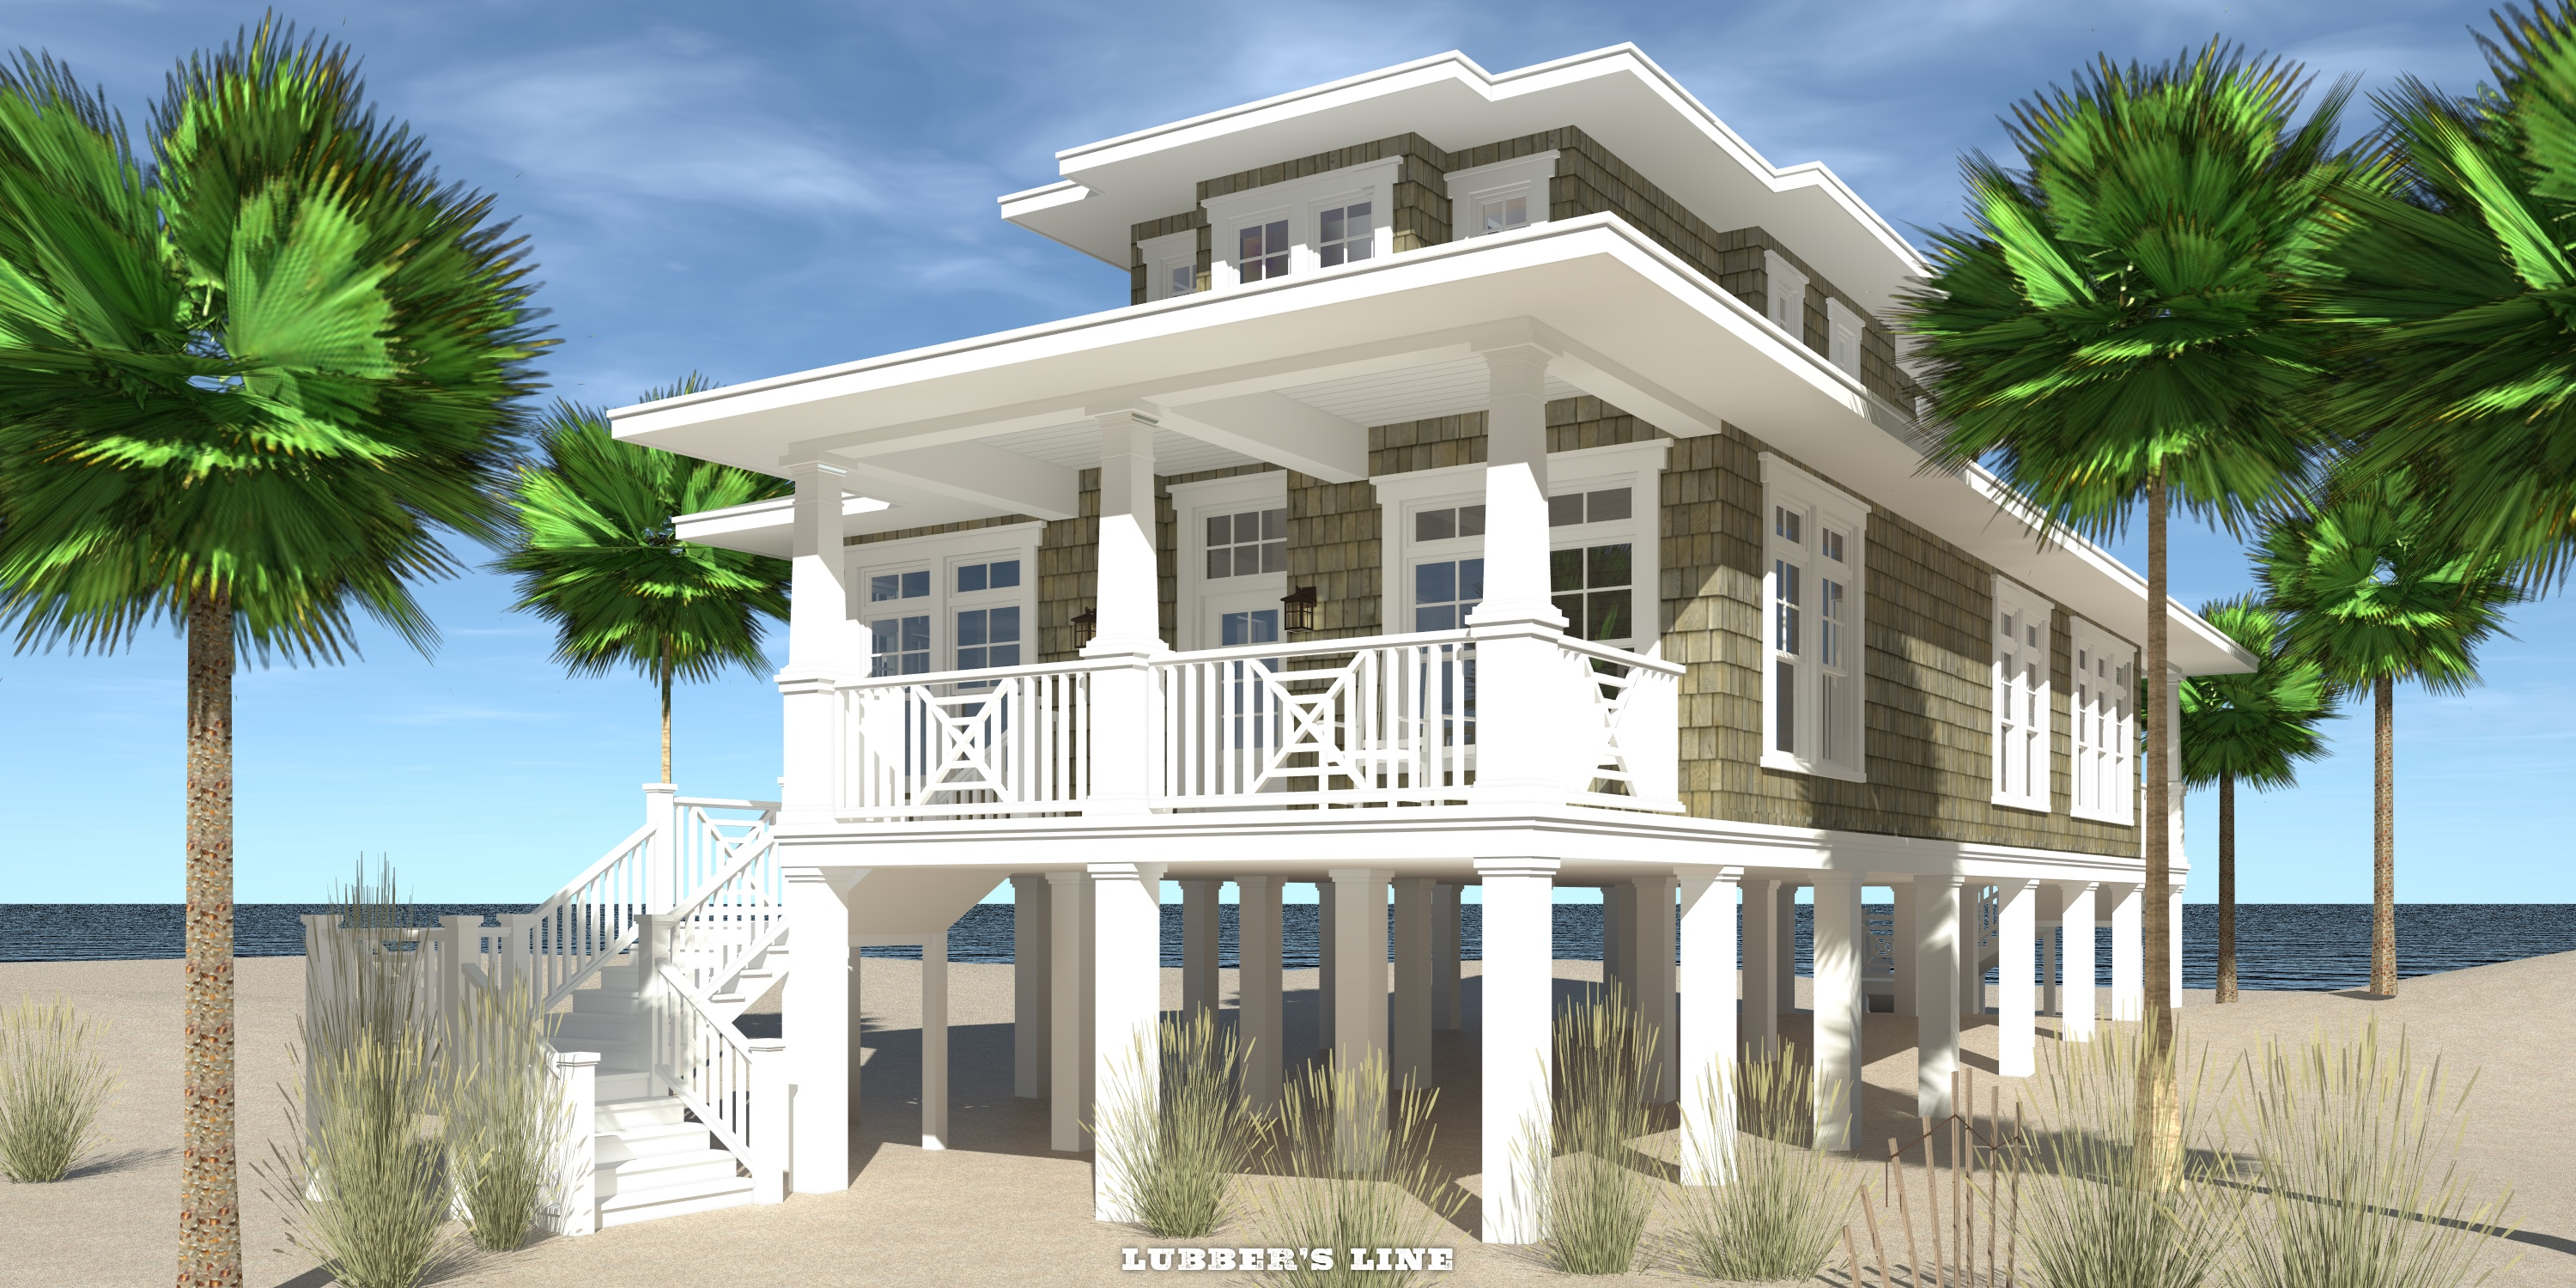 Beach house plans with front view for Beachfront house plans